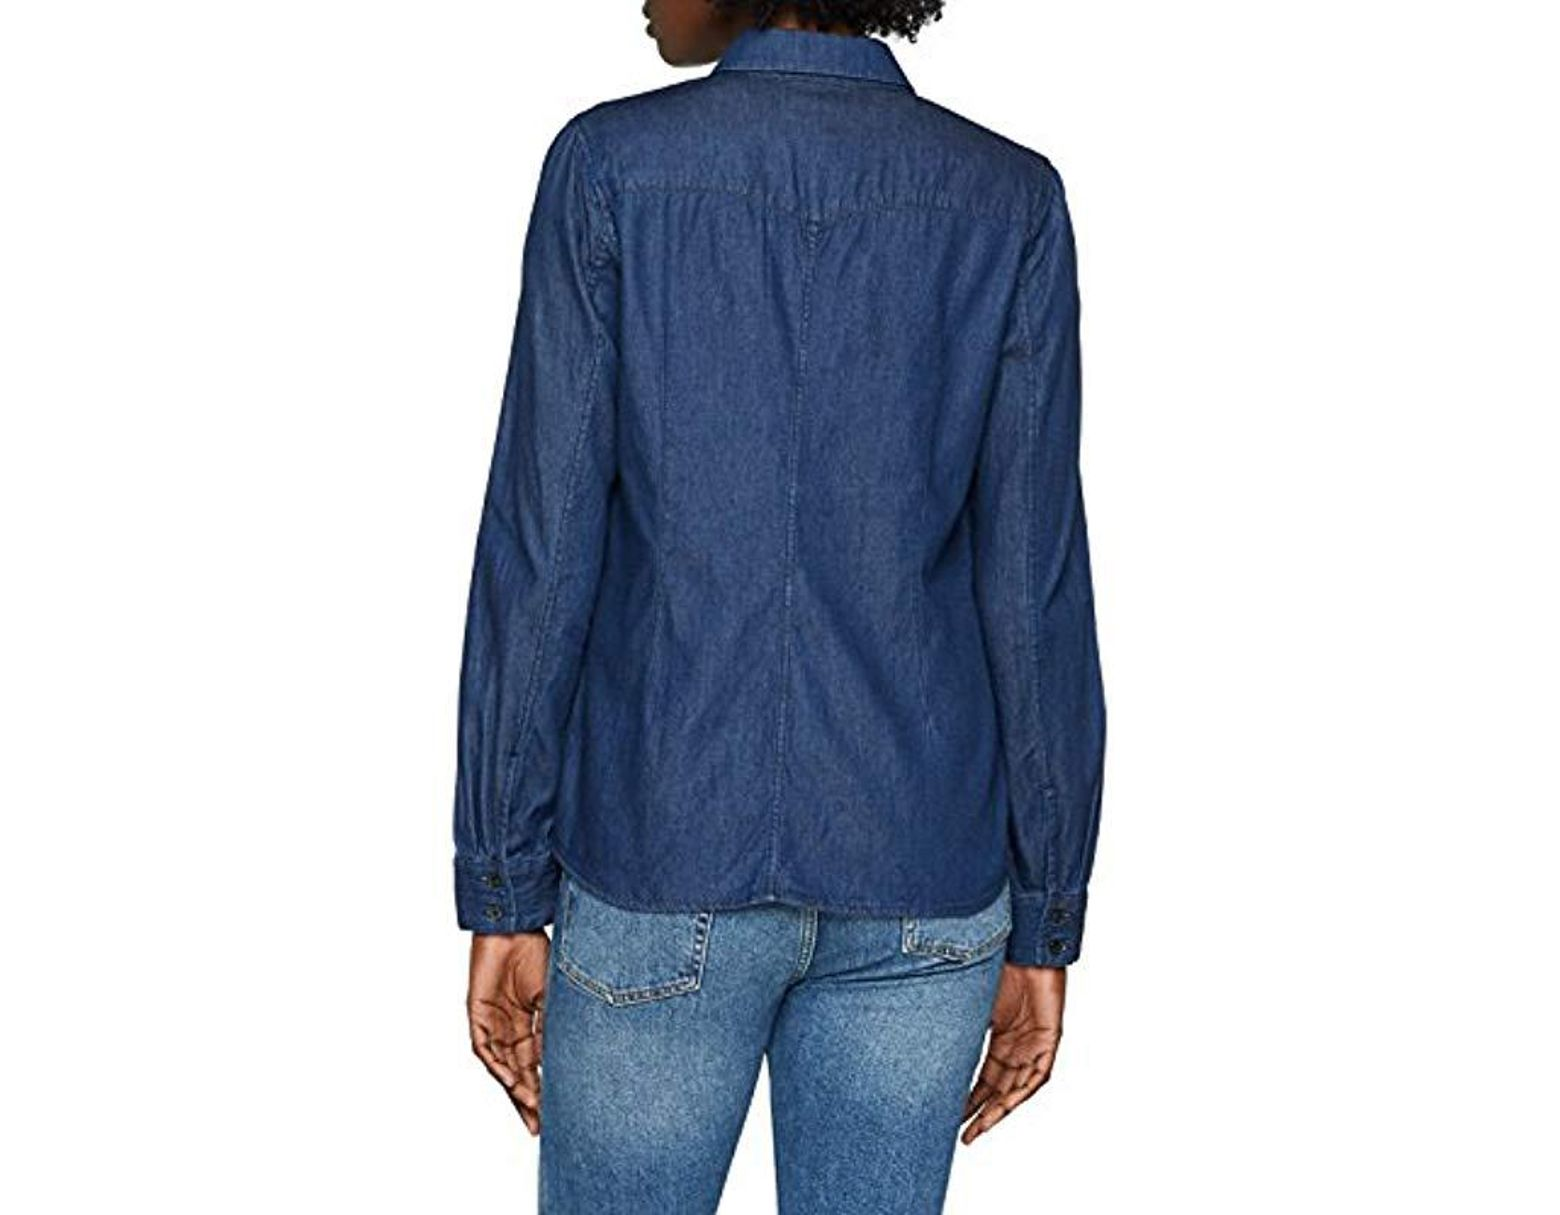 G-Star Raw Womens Tacoma One Pocket Long Sleeve Bf Shirt in Indigo Sterling Flannel Check